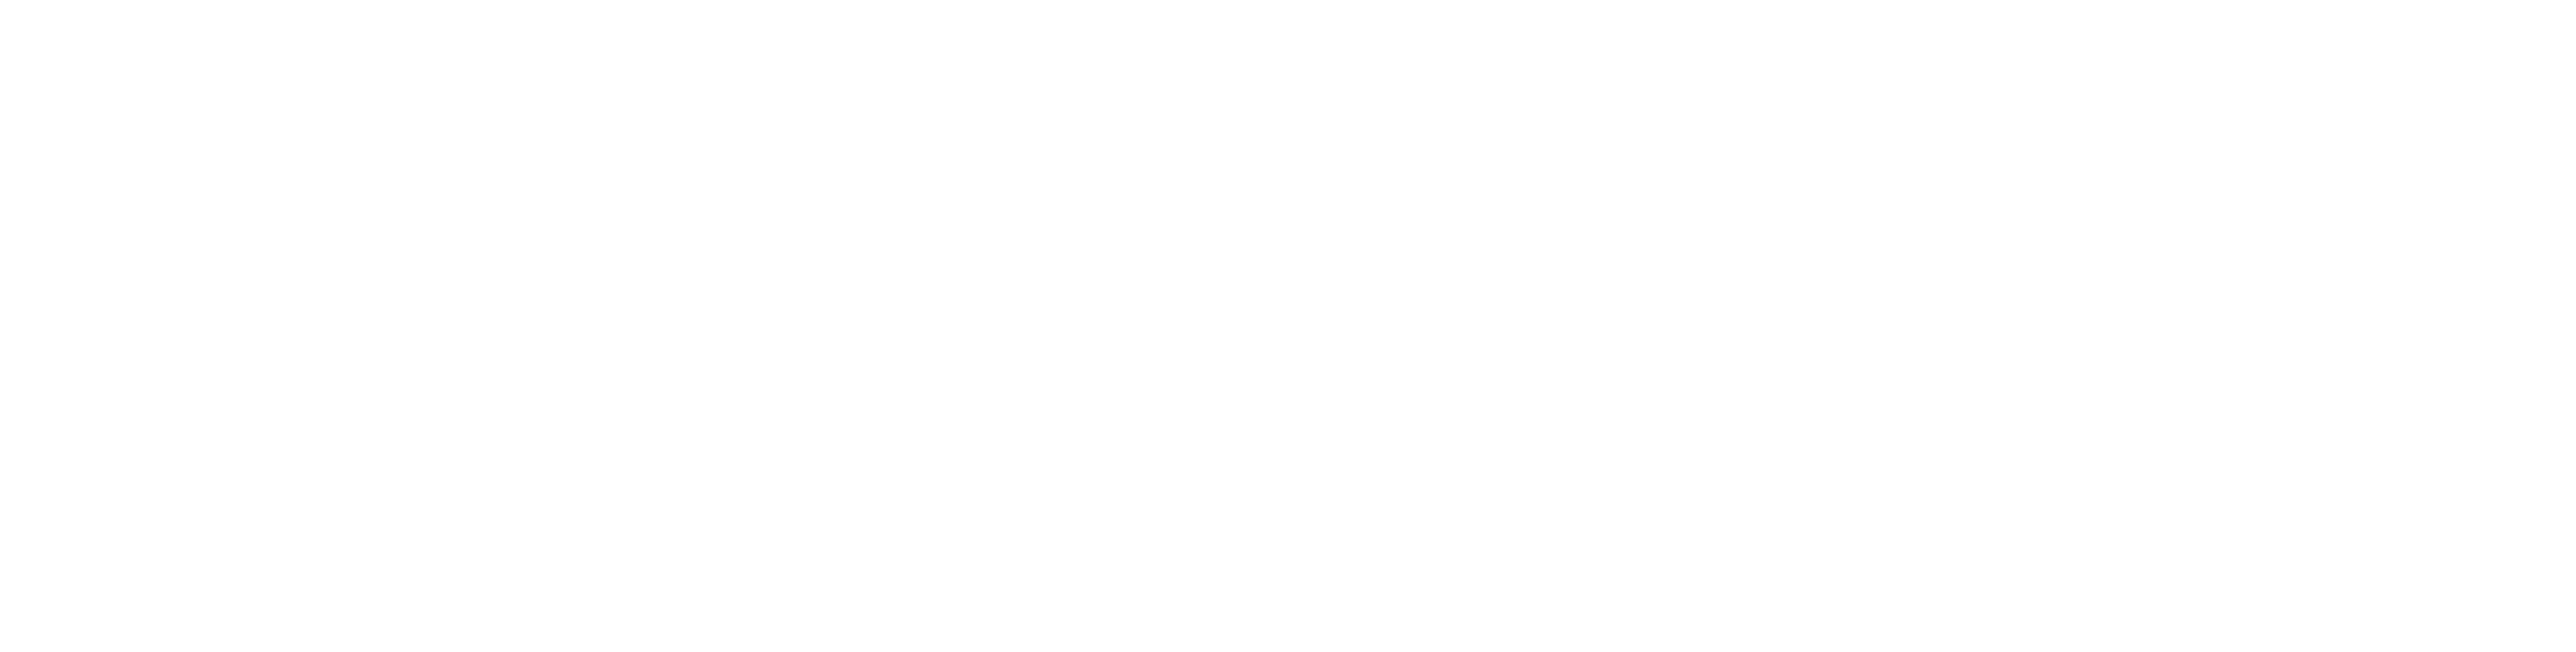 MedThreads Essential Subscription Box Scrubs for Nurses, DOctors and Essential Workers